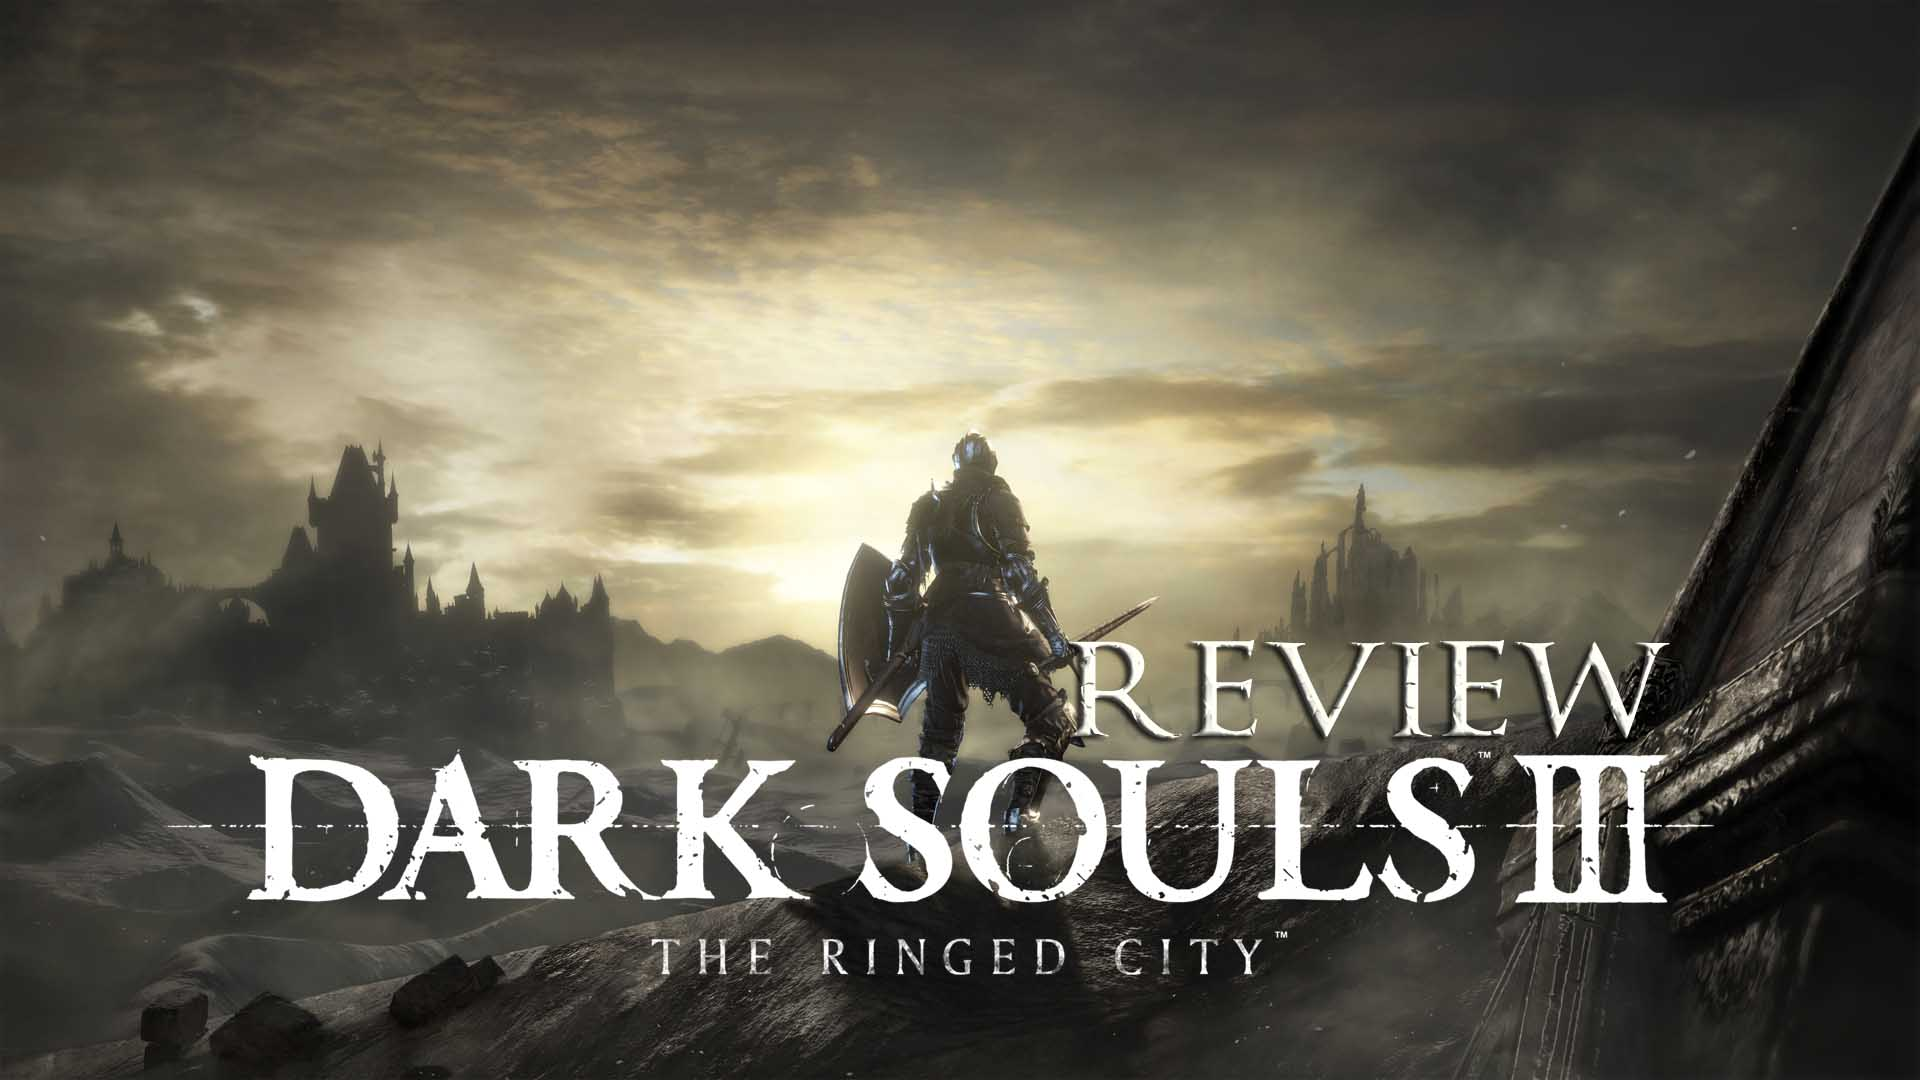 Dark Souls 2 Review Not The End: Dark Souls 3 The Ringed City Review: The End Of An Age